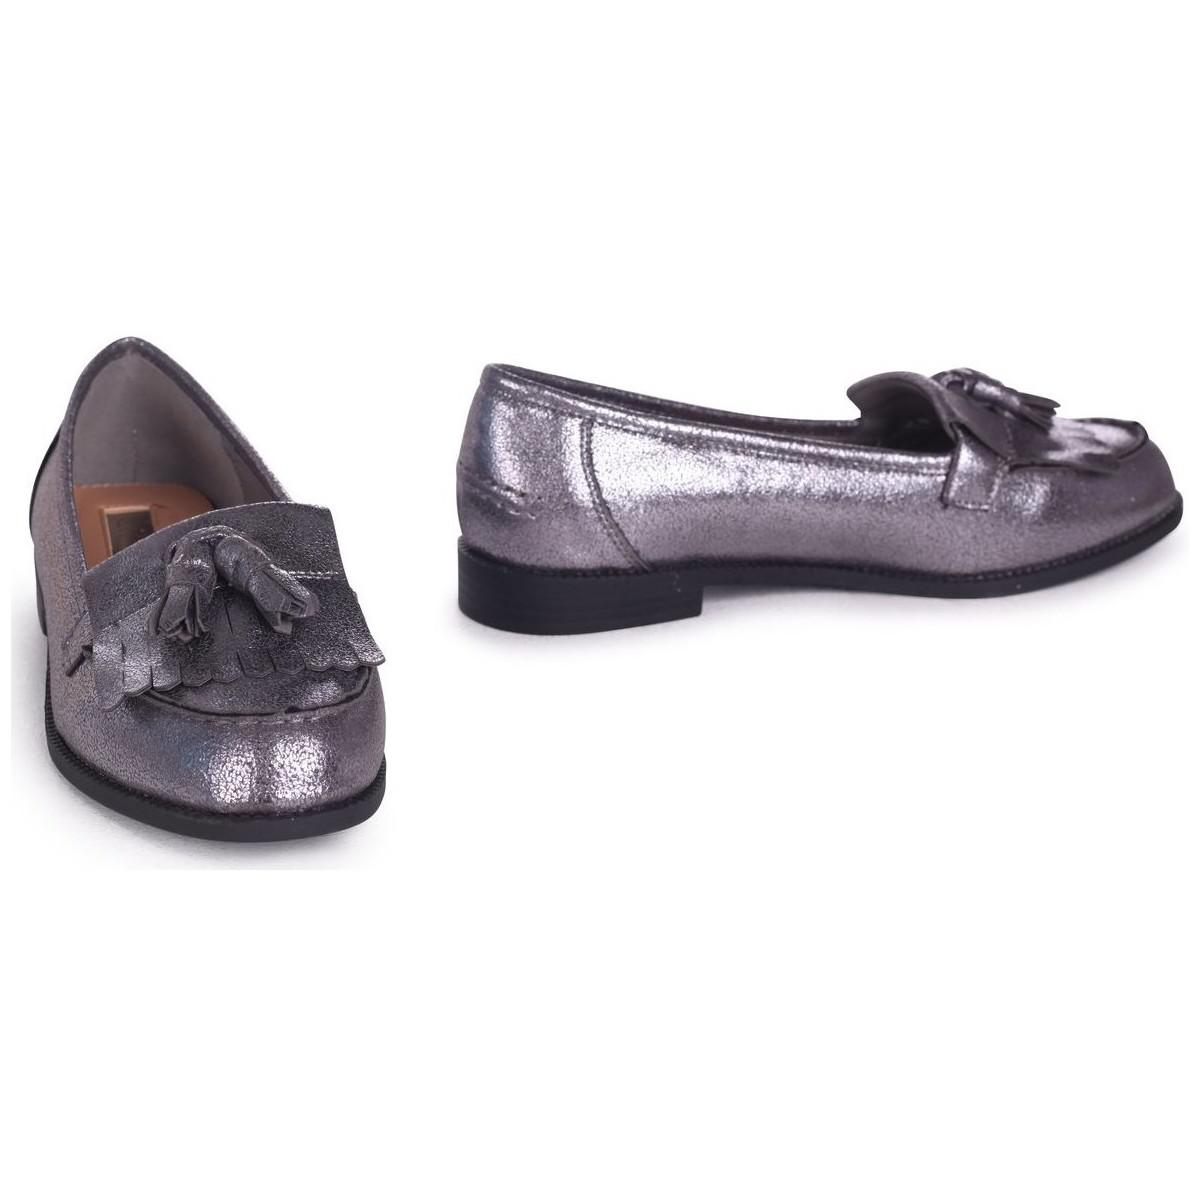 b09f4955281 Linzi - Metallic Rosemary Women s Loafers   Casual Shoes In Silver - Lyst.  View fullscreen